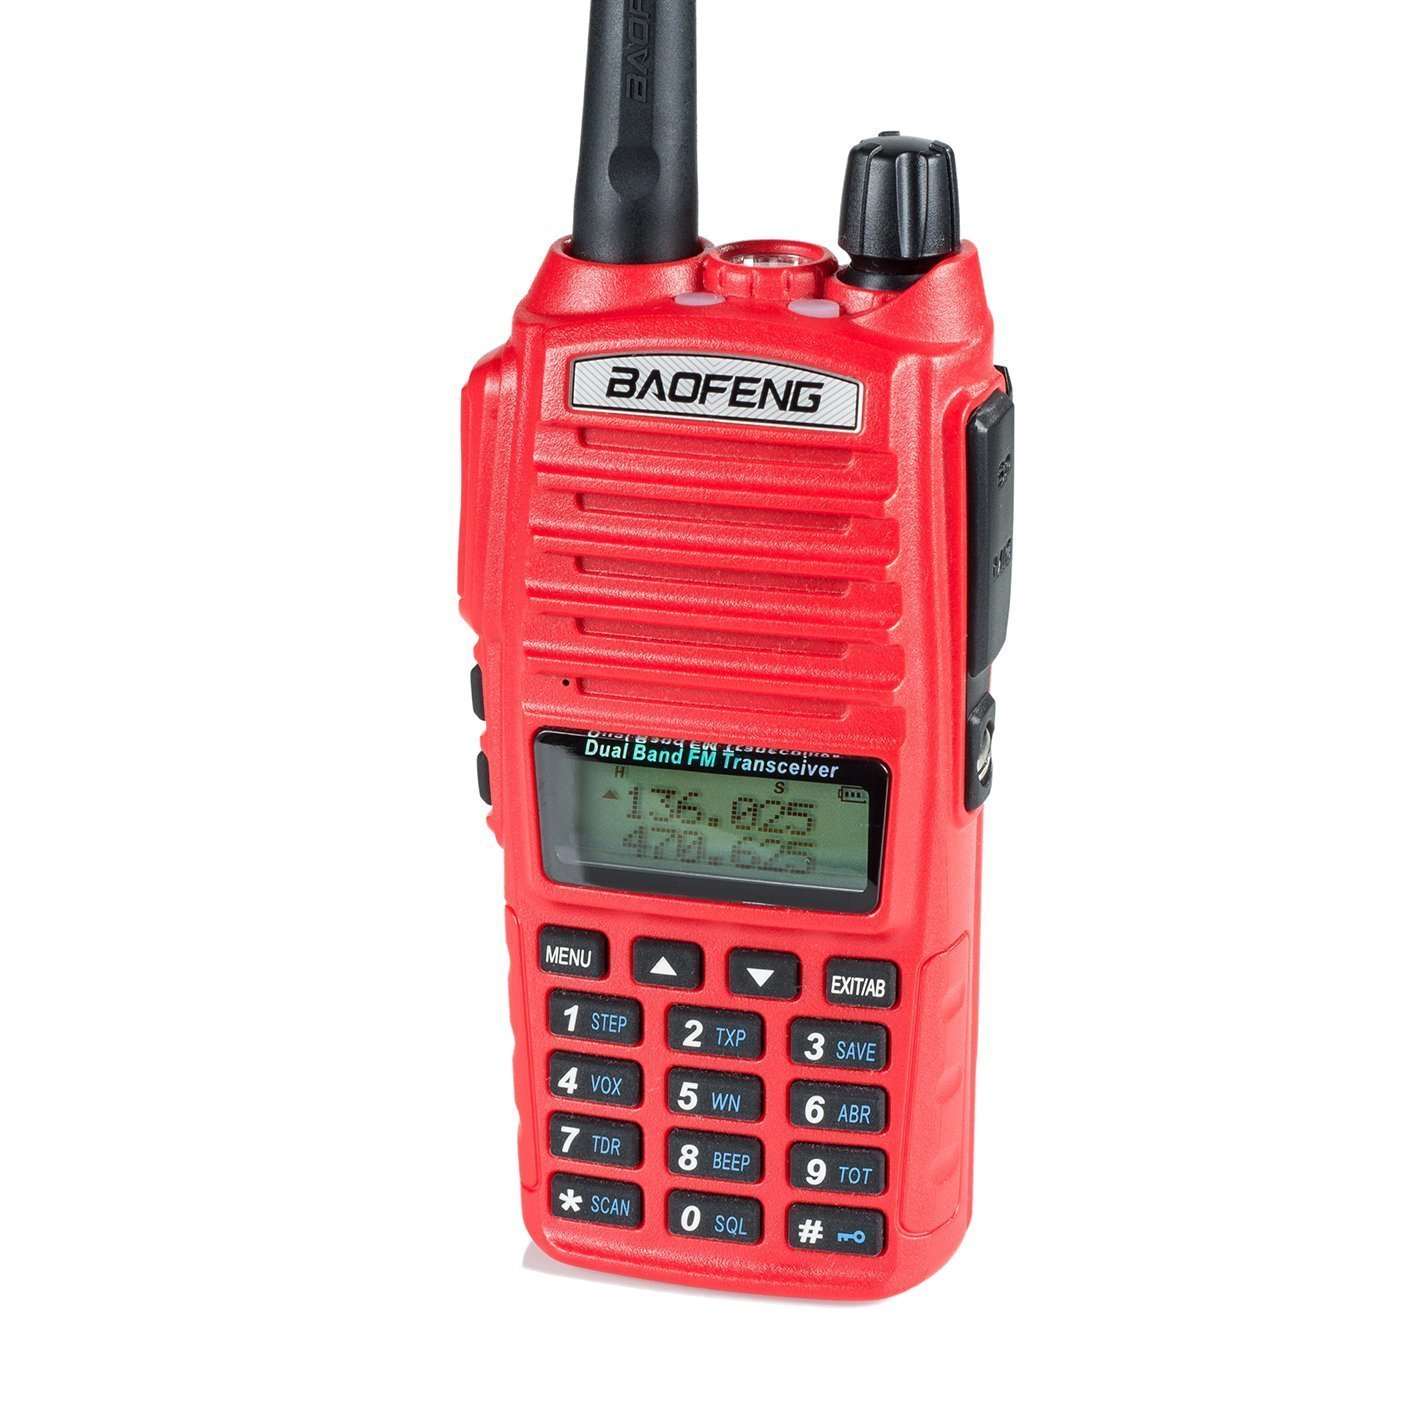 BaoFeng UV-82HP High Power Dual Band Radio: 136-174mhz (VHF) 400-520mhz (UHF) Amateur (Ham) Portable Two-Way/Red